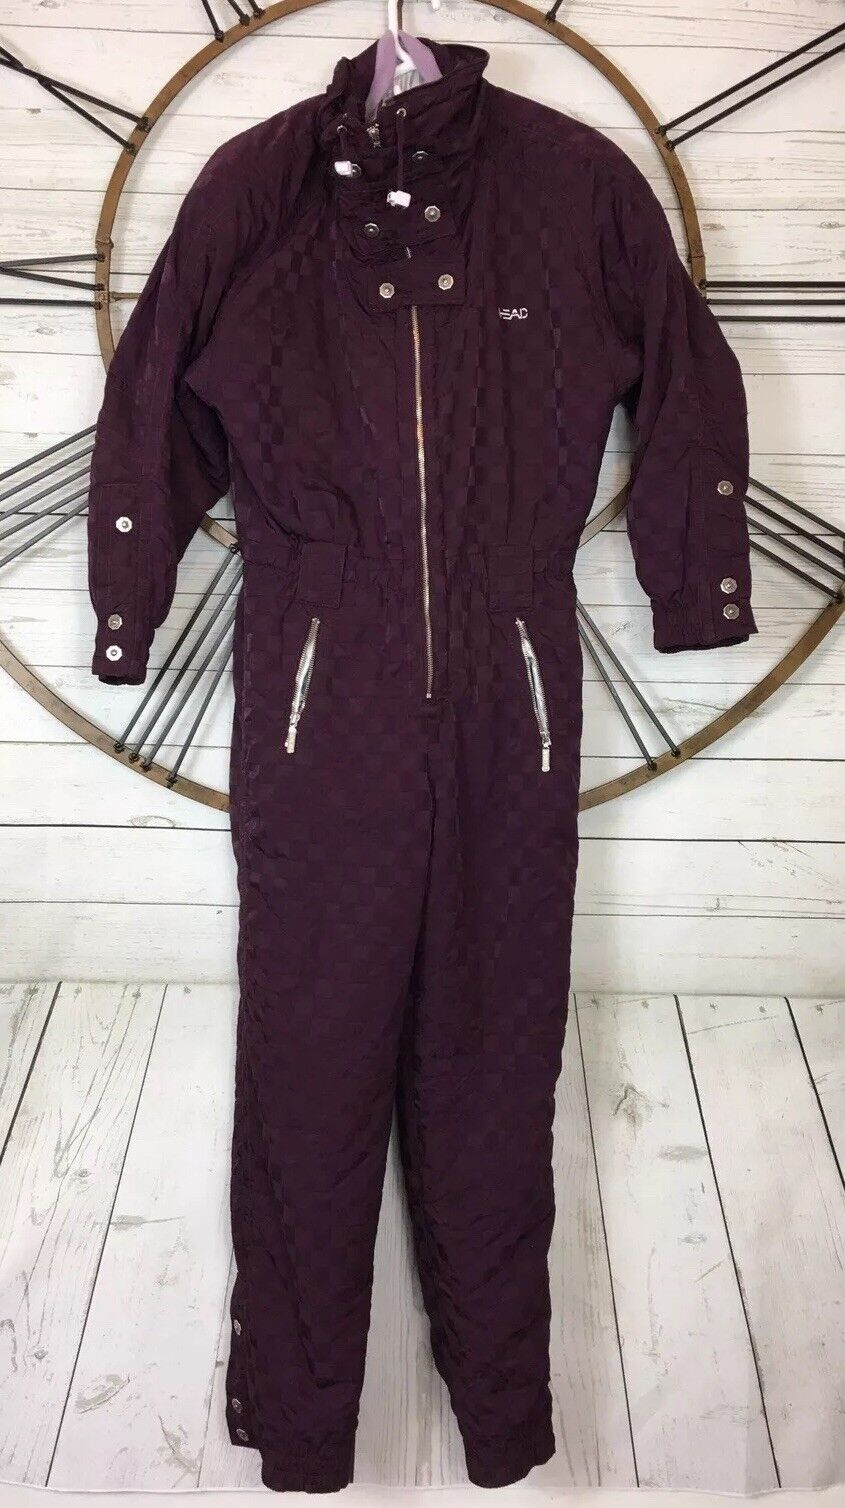 Womens Vintage Retro HEAD Wine Snow Ski-snowboard One Piece Suit